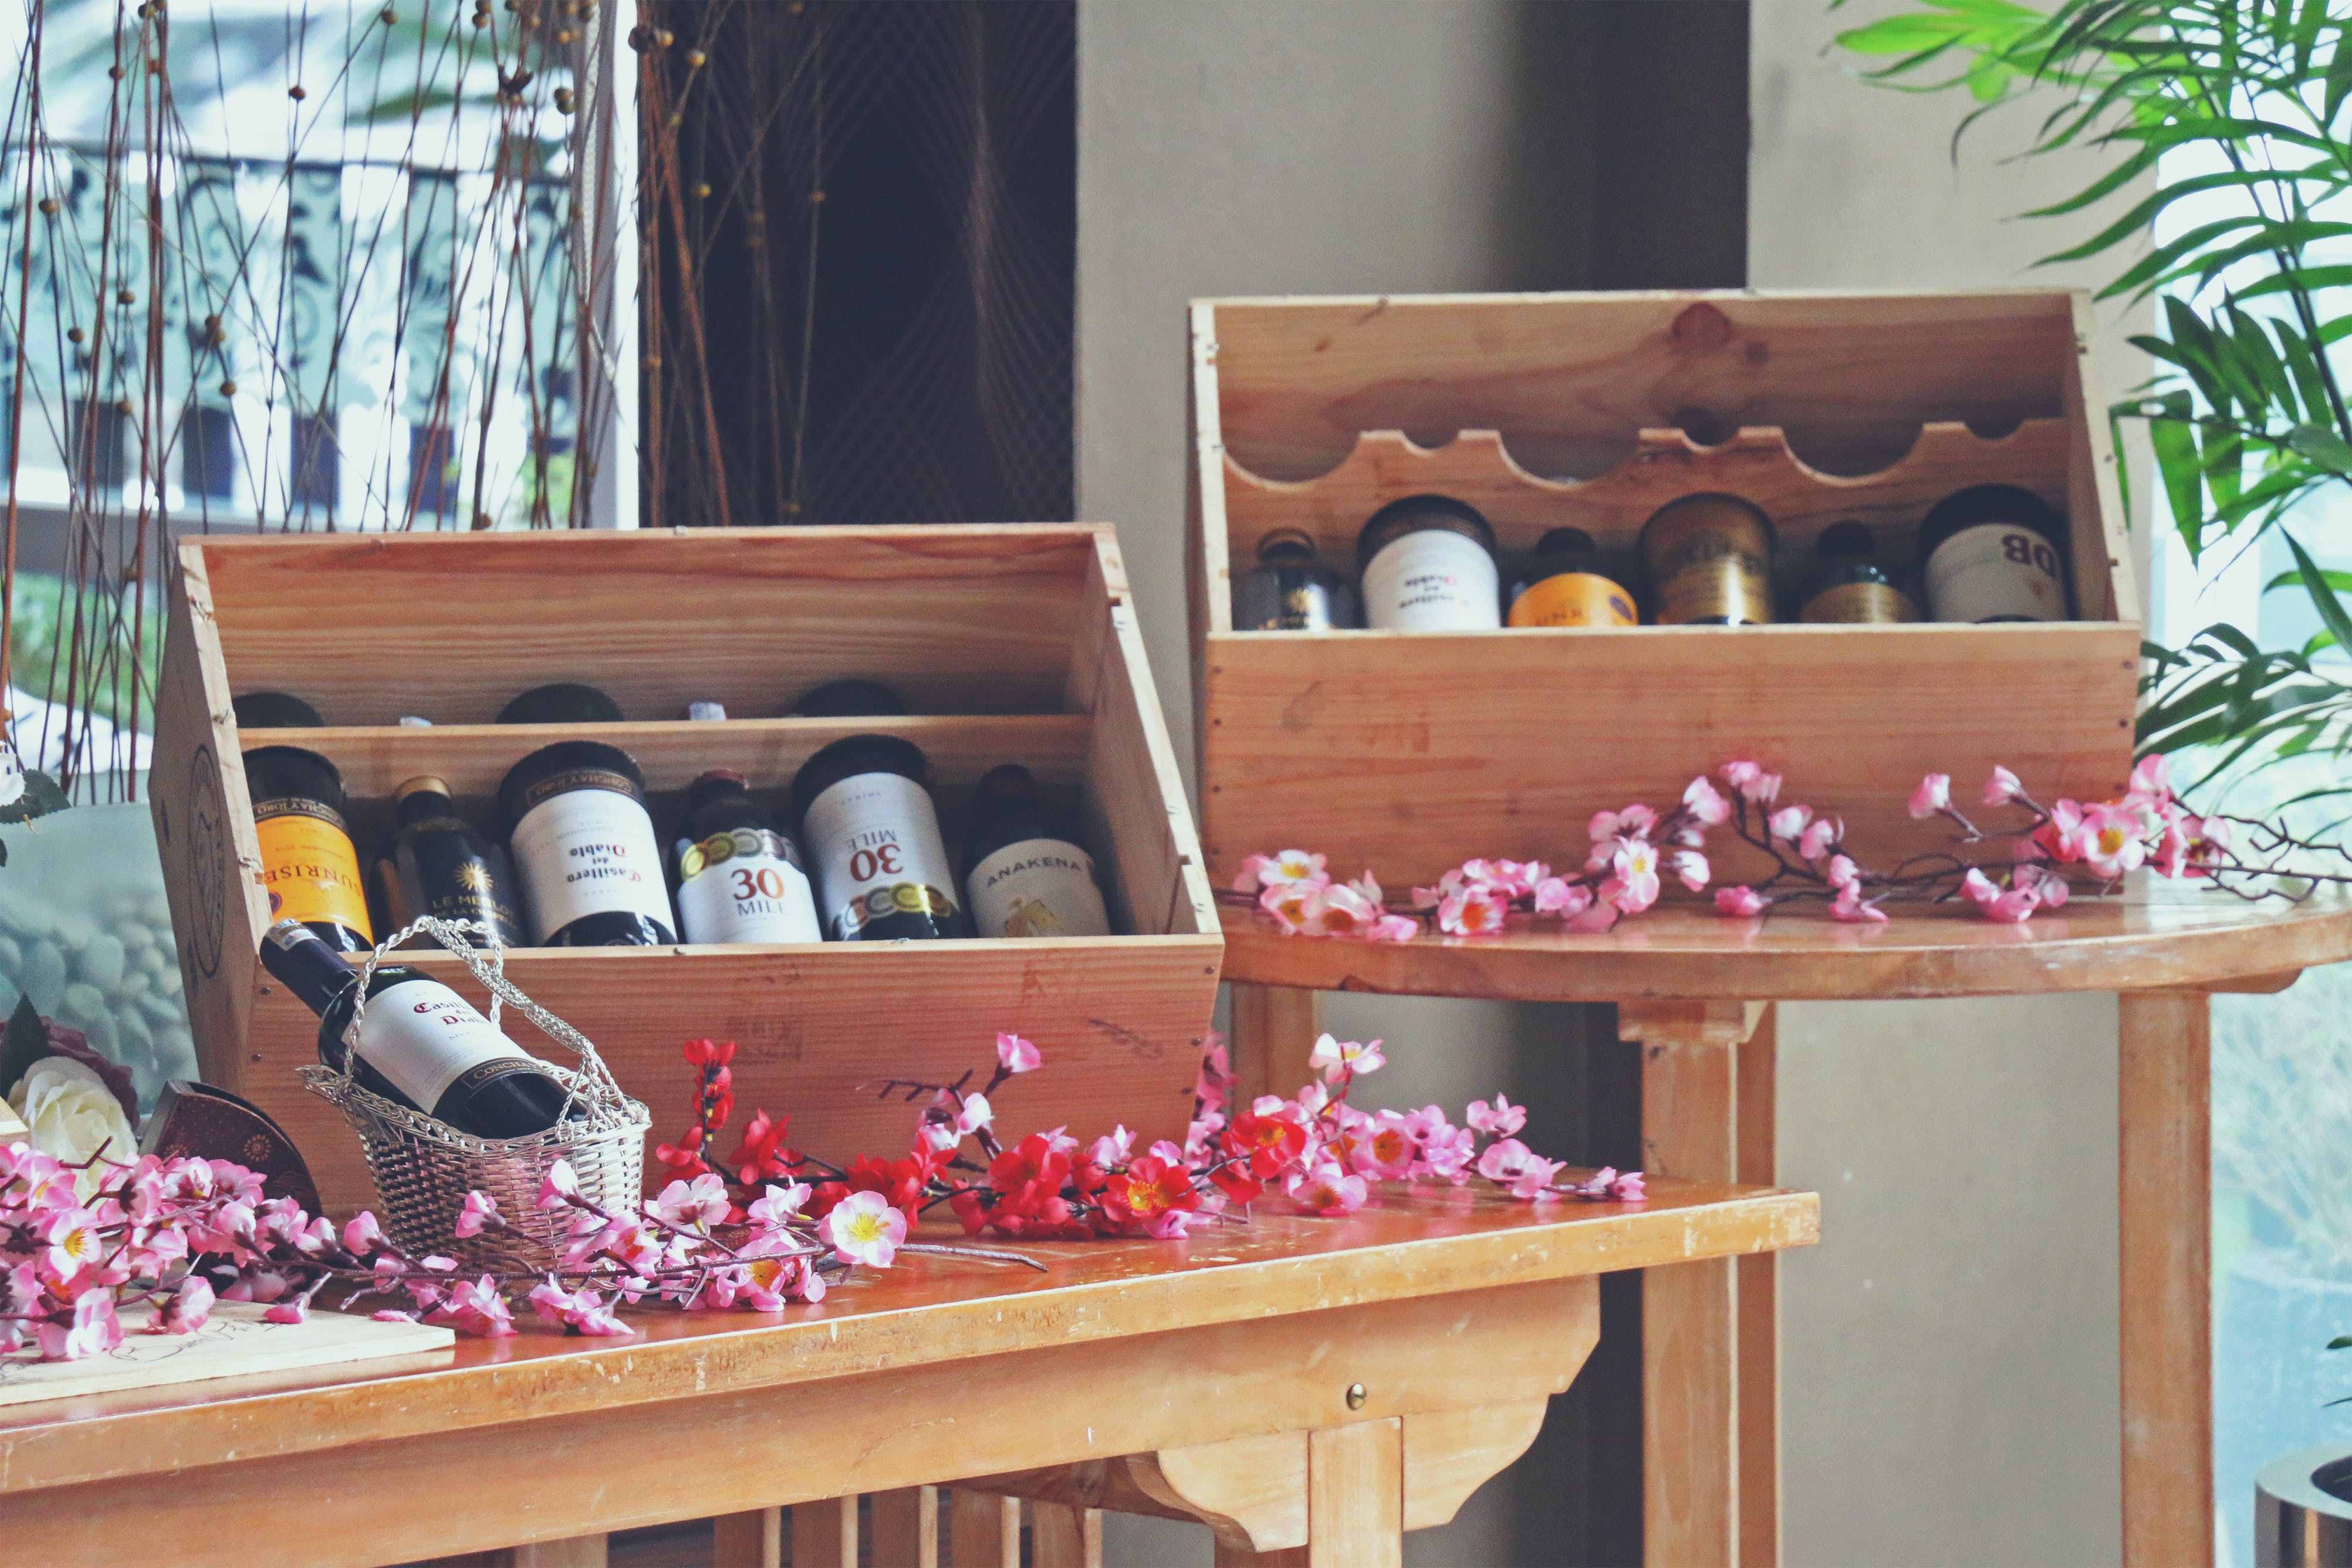 Free stock photo of alcohol bottles, exhibition, flowers, indonesia